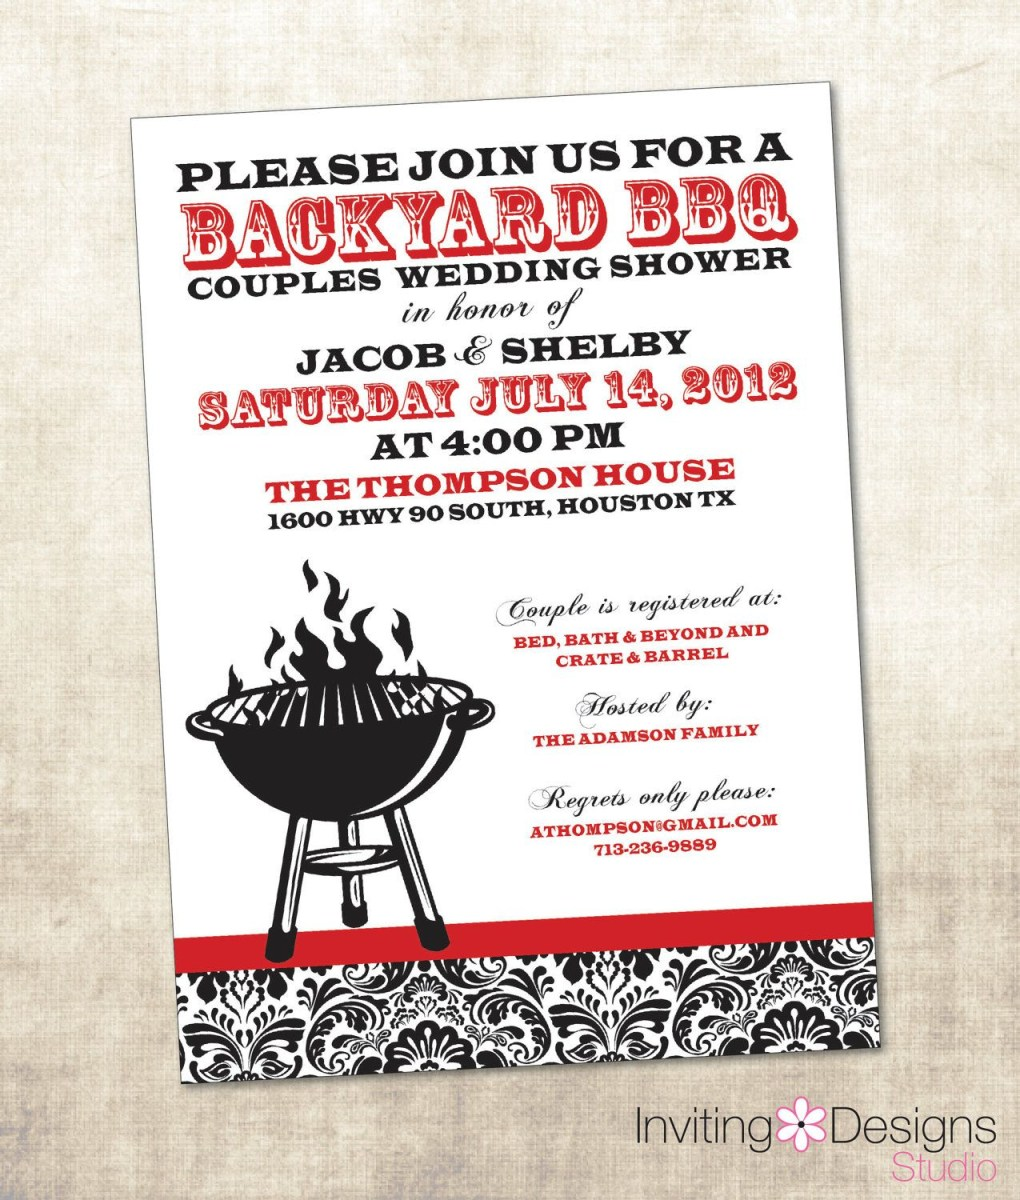 Coed Wedding Shower Invitations Bbq Wedding Shower Invitation Couples Shower Invitation Printable